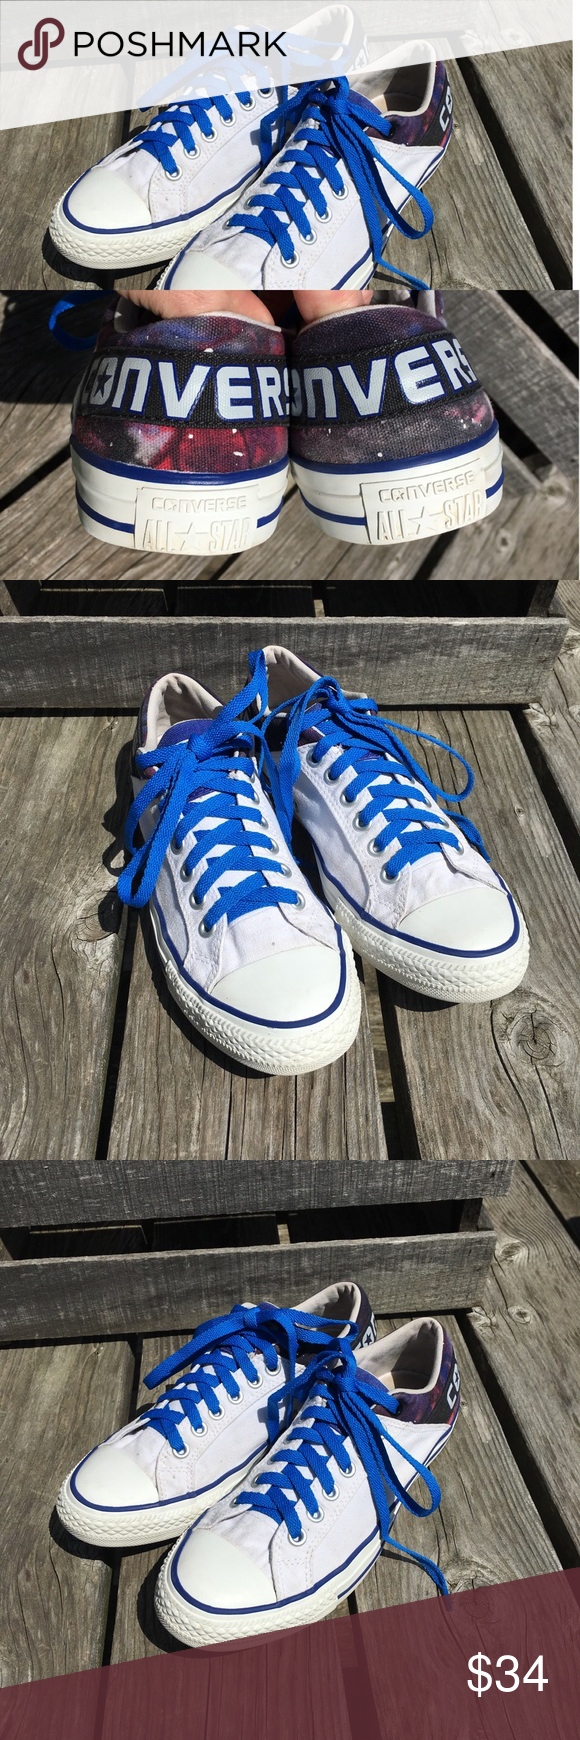 10644421bd9fb0 🆕List! Converse Galaxy-Back Sneakers! EUC! White with galaxy print at  heel ankle! New blue laces added - can be changed if desired.